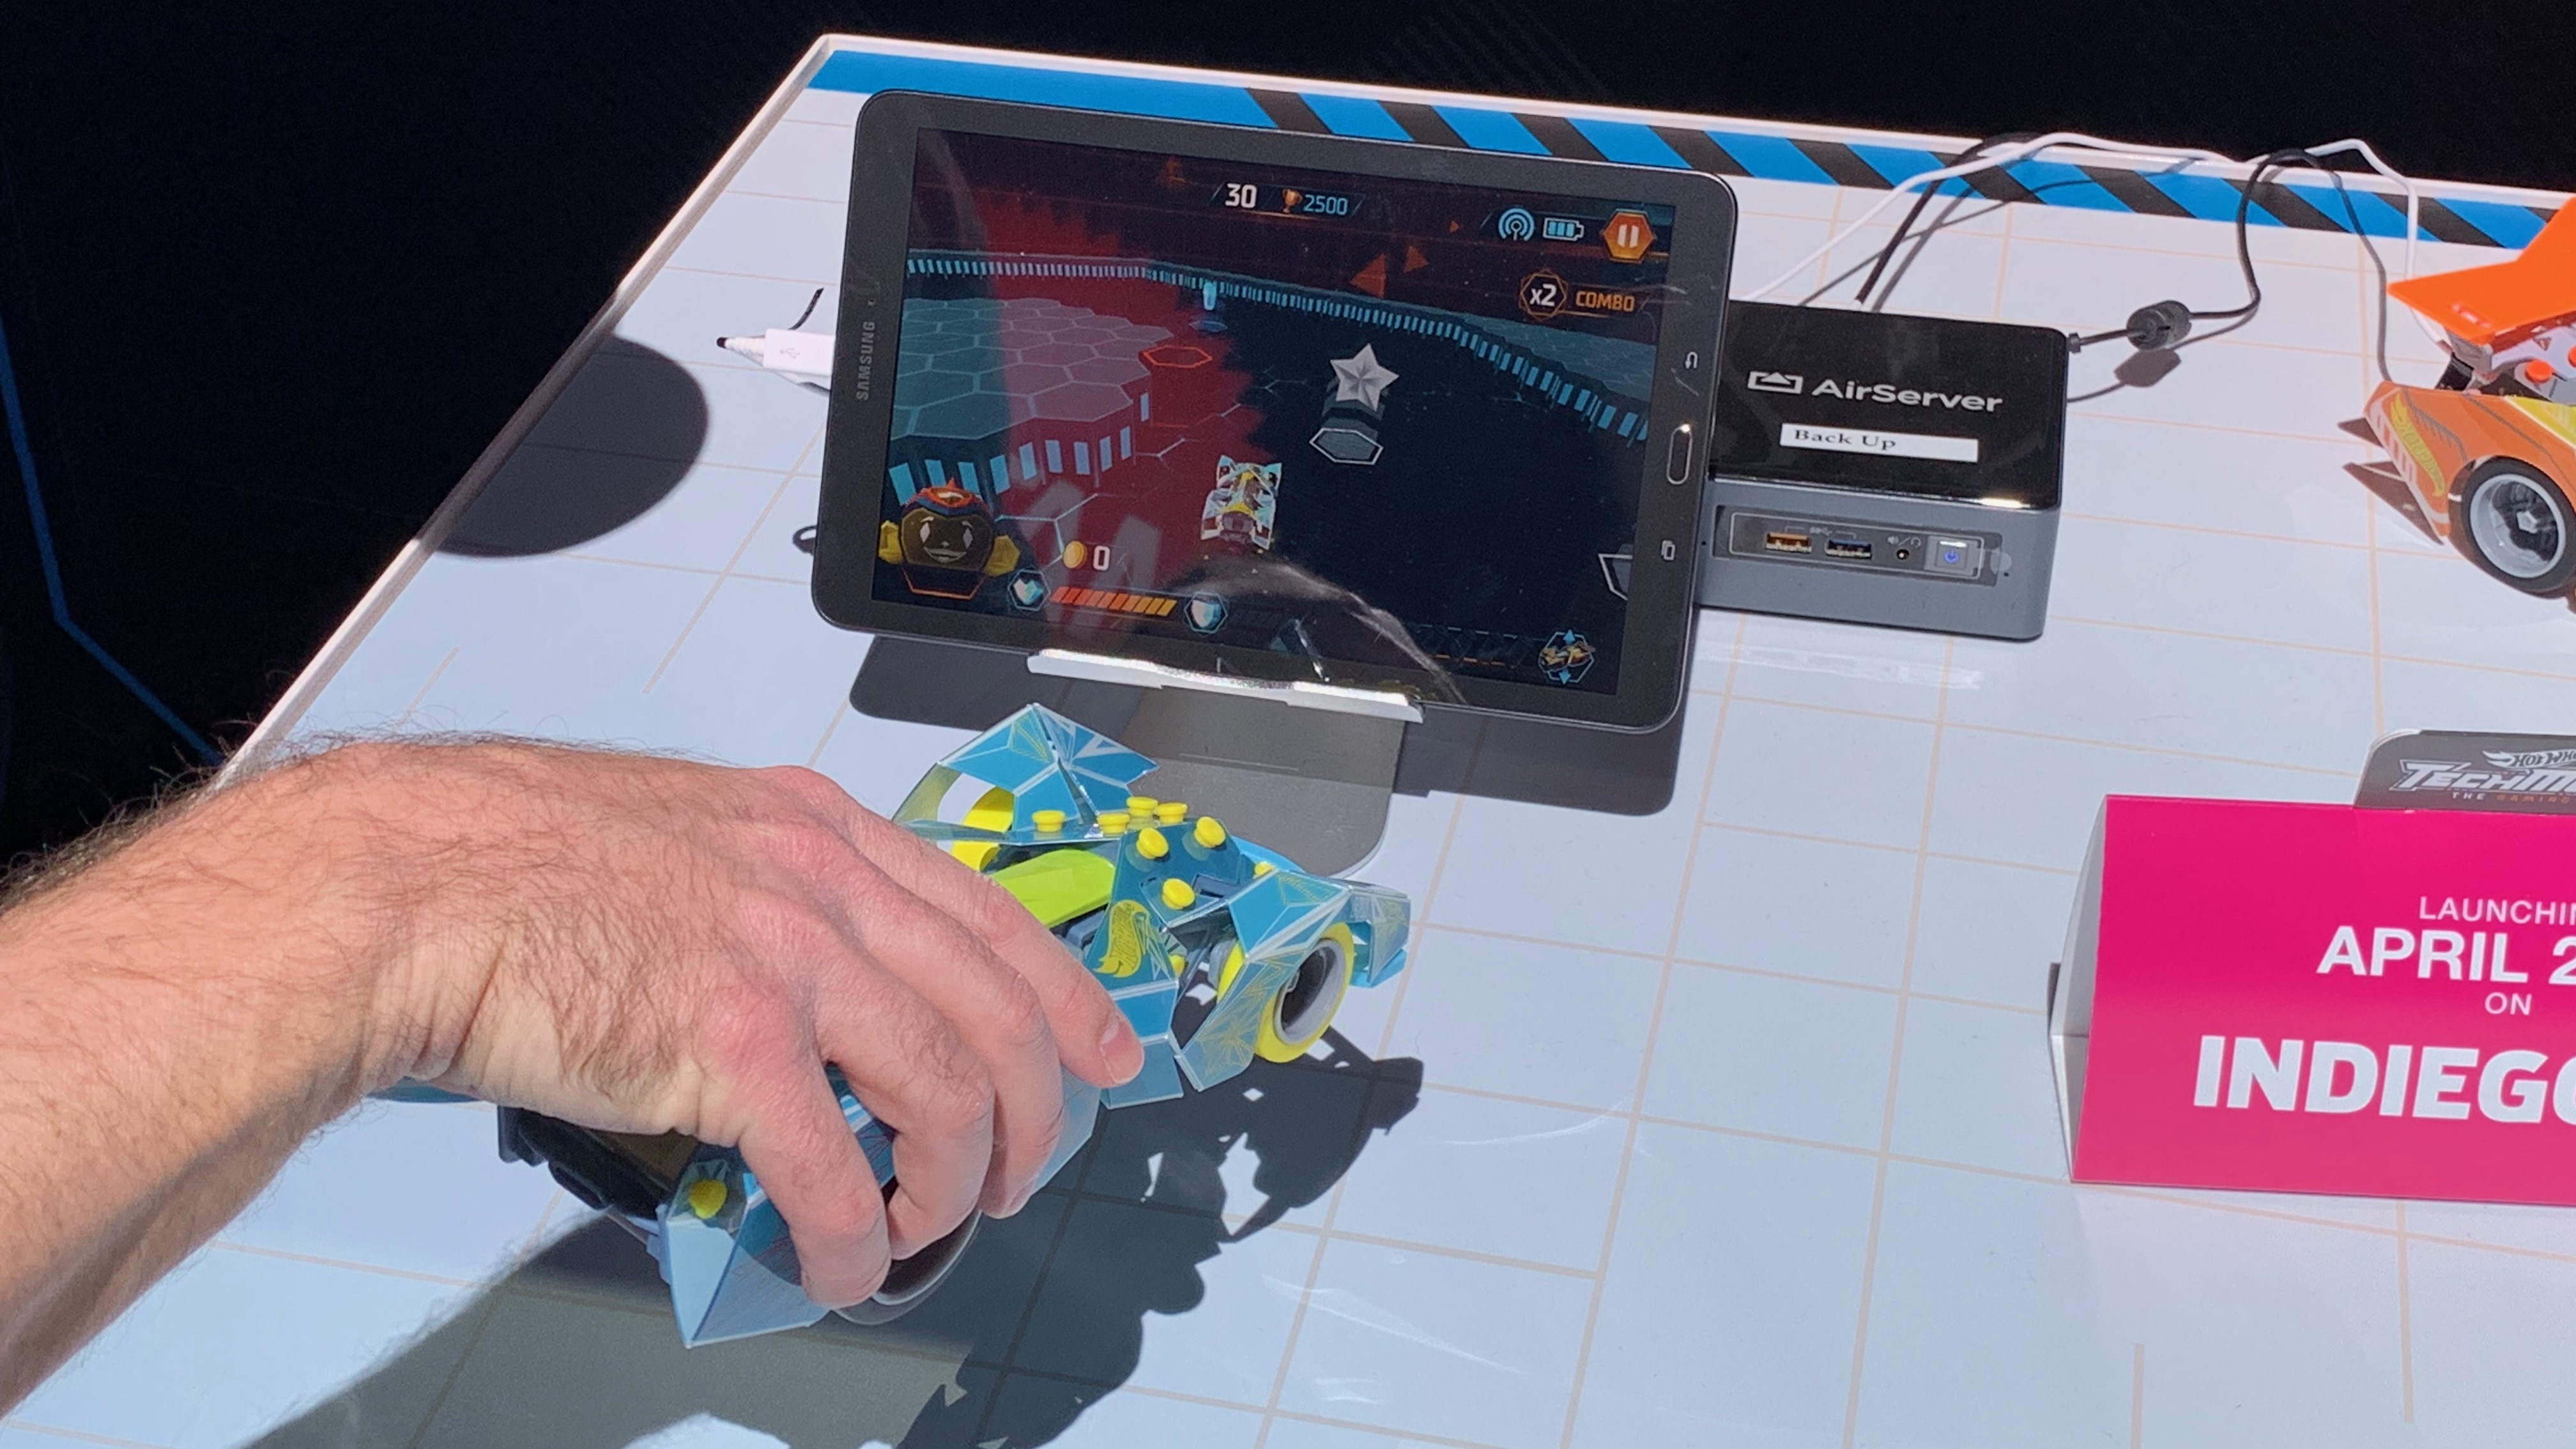 EnkWZEbiUgvACYdbfXNeoa - Tech toys 2019: the best new games and gadgets from the NYC Toy Fair